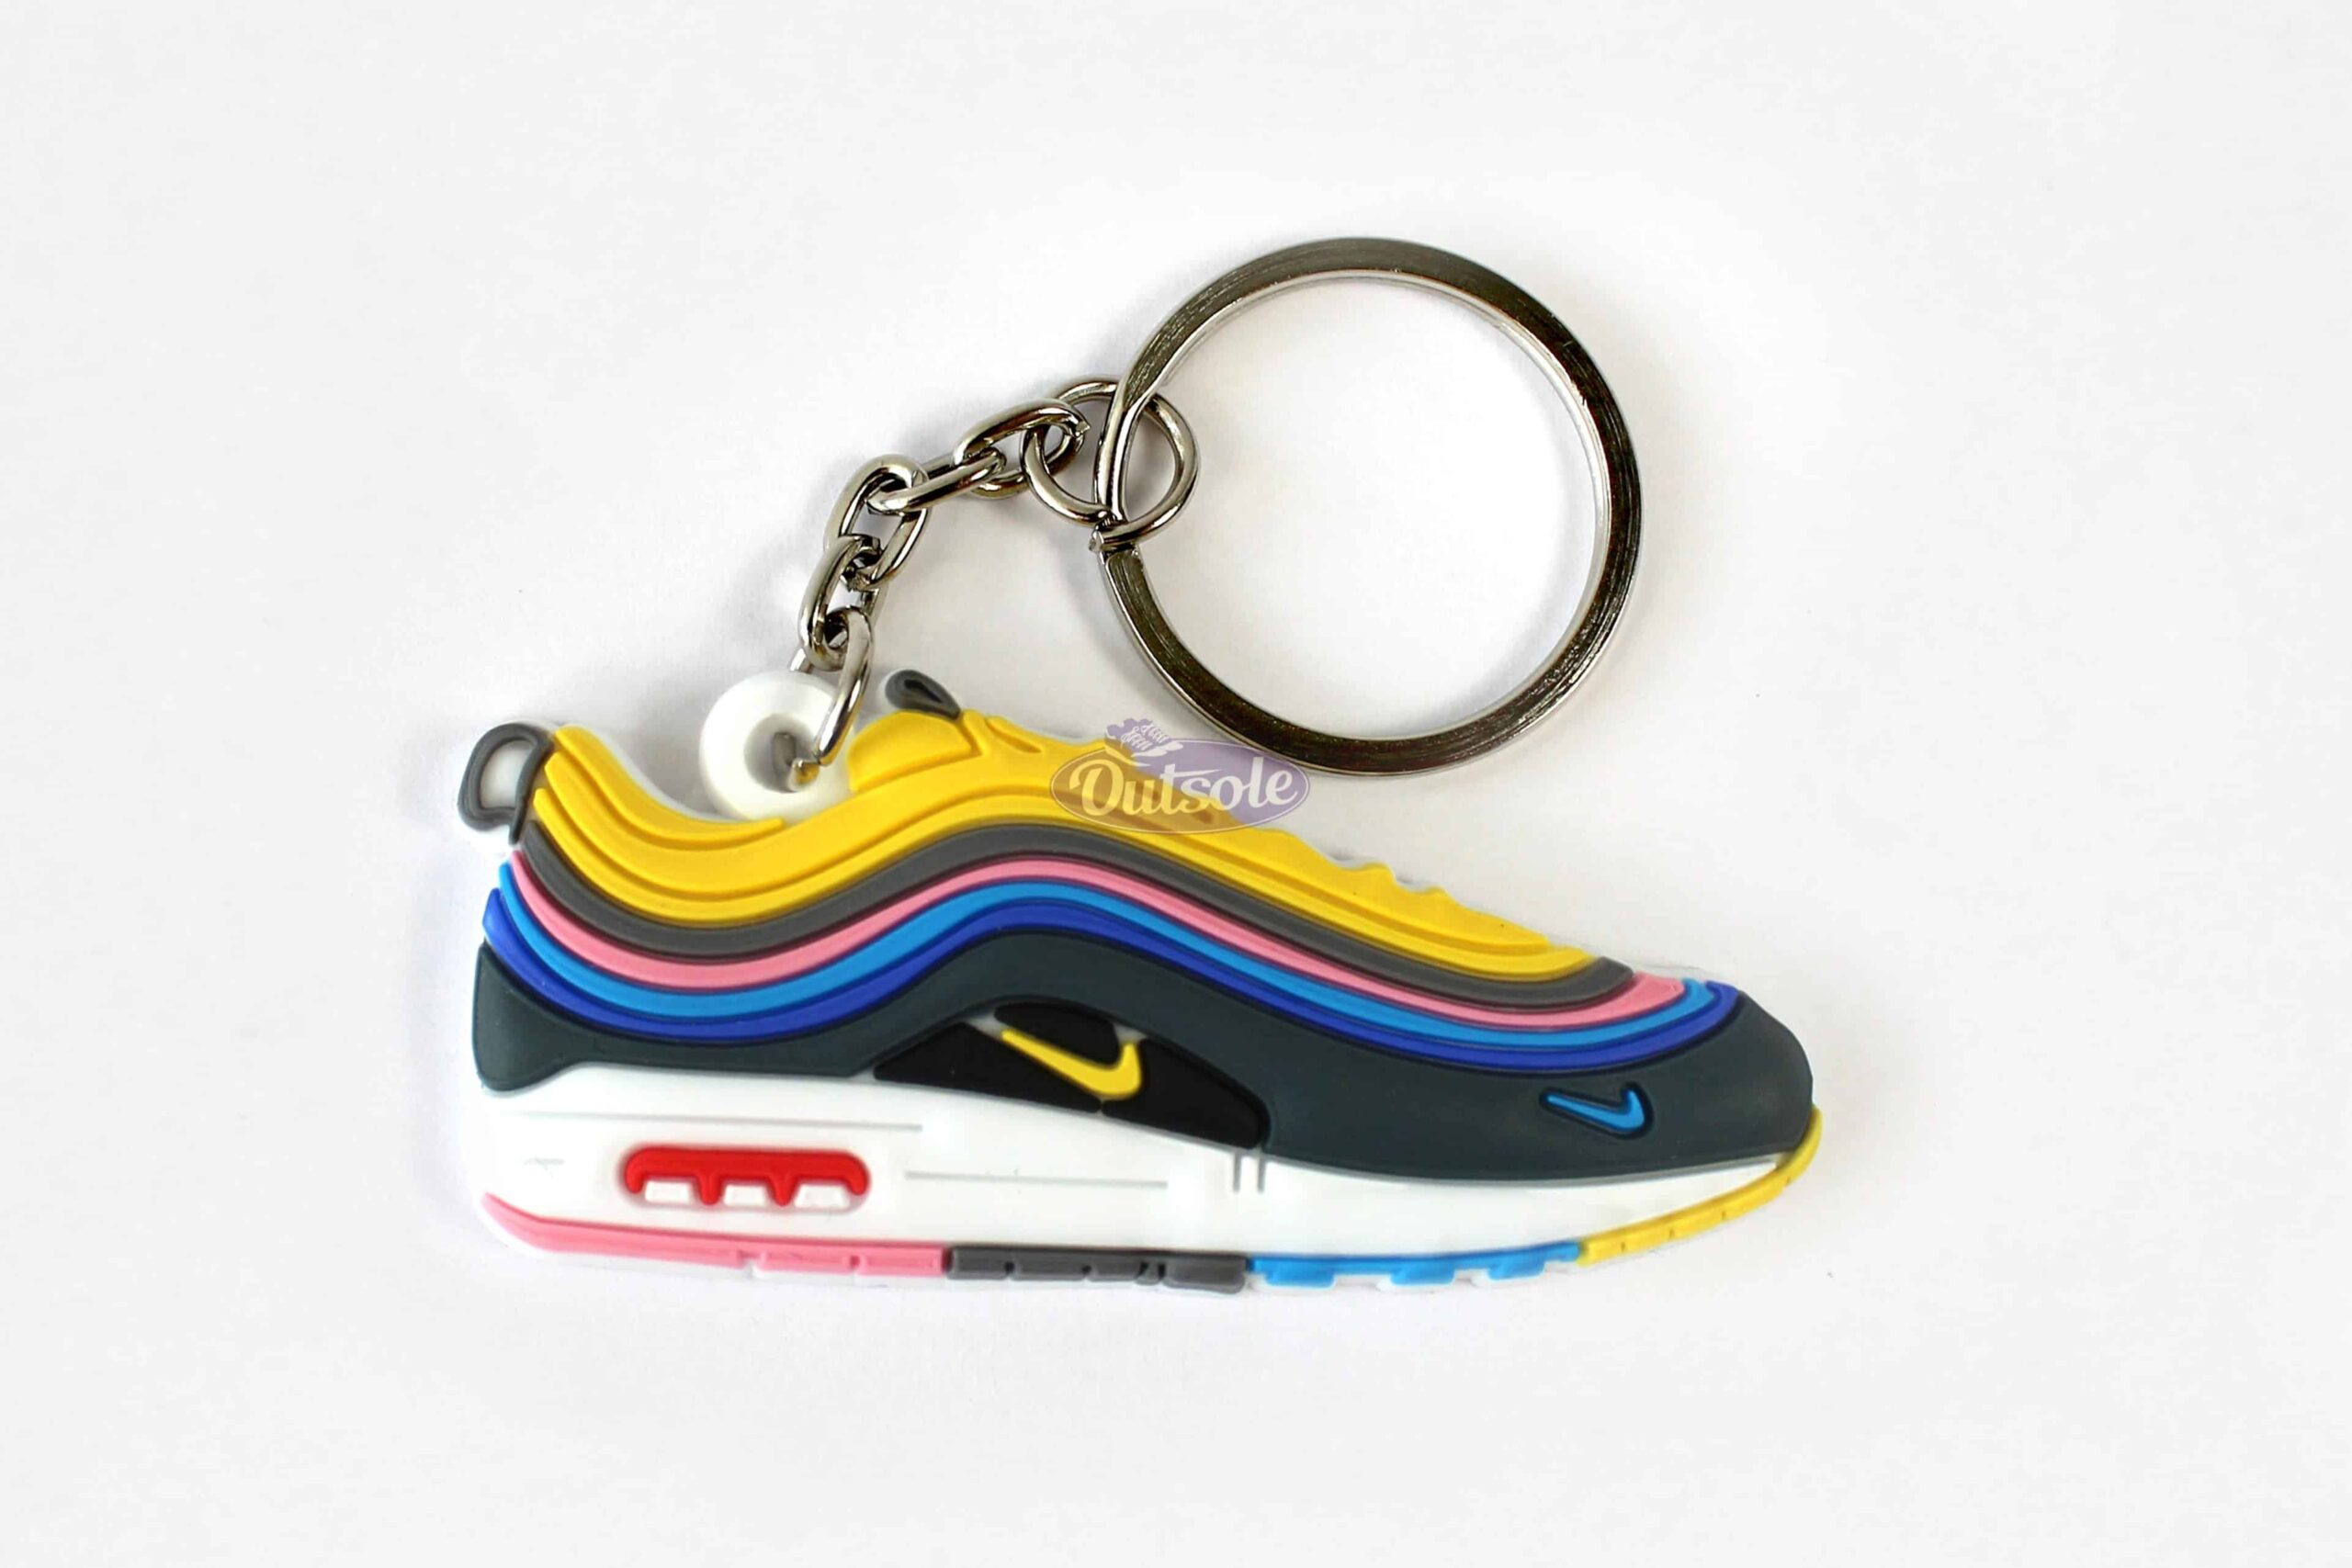 Nike Air Max 1/97 Sean Wotherspoon keychain